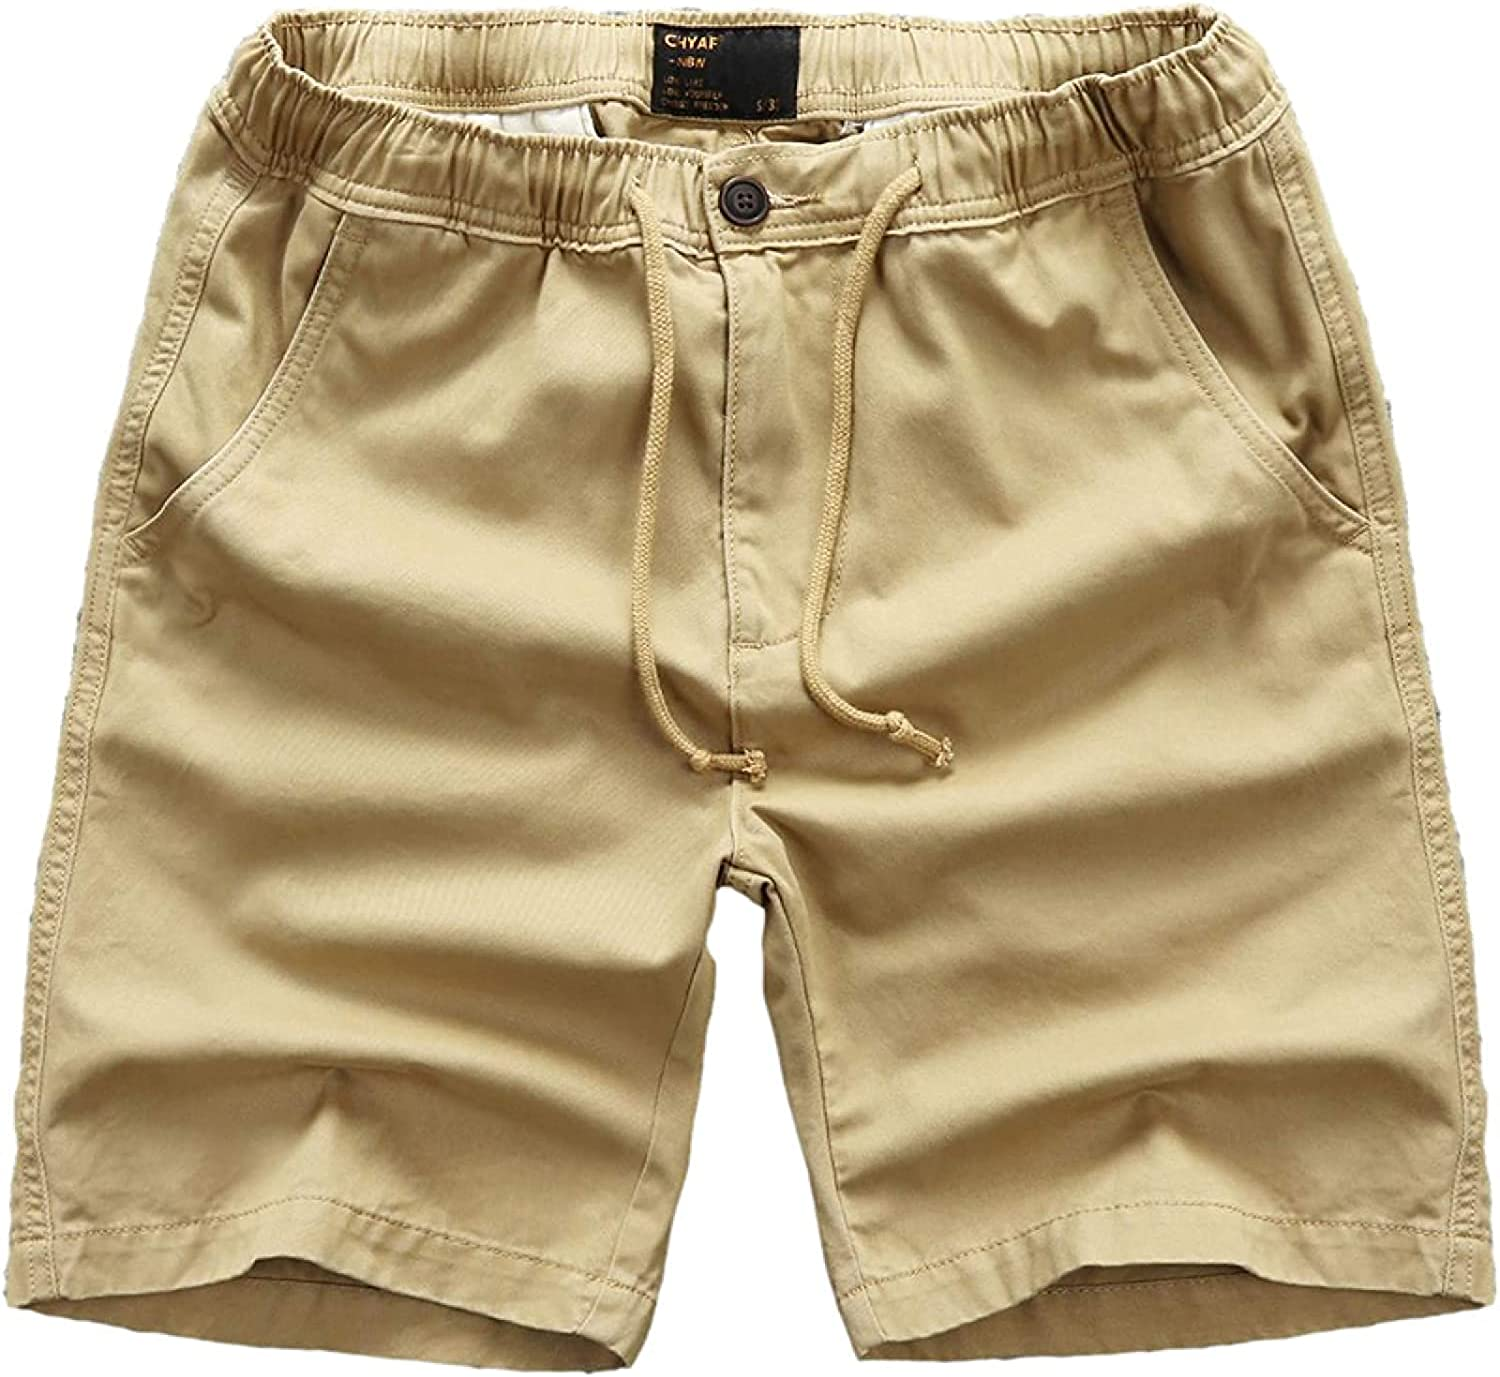 Men's Sports Cargo Shorts Summer Fashion Loose Comfortable Trend All-Match